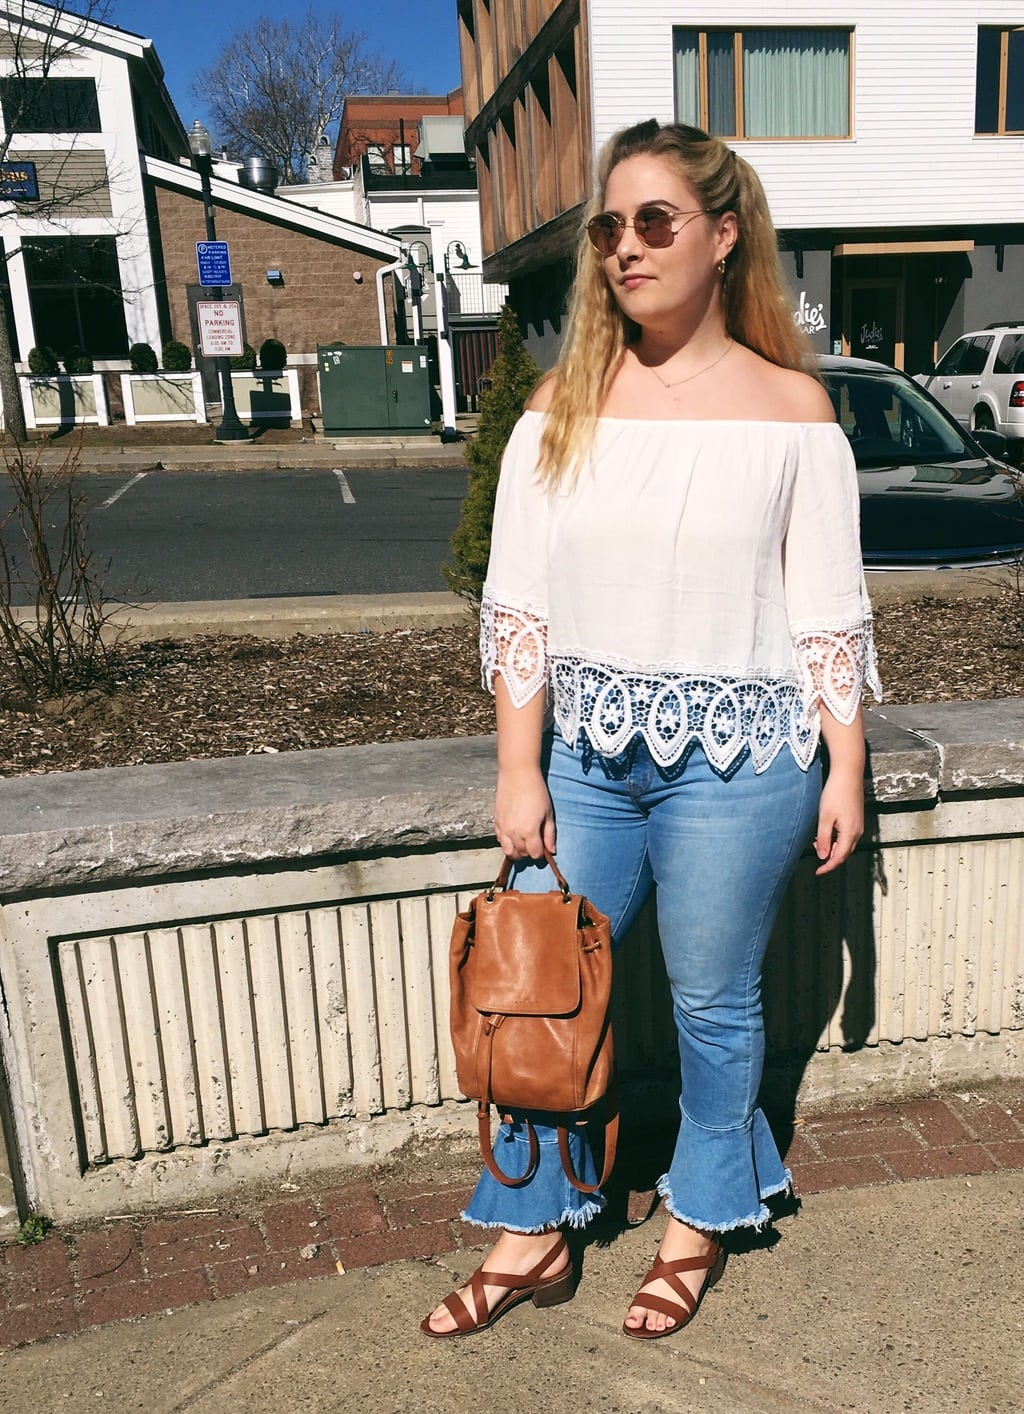 University of Massachusetts Amherst student Kendall wears a cream off-the-shoulder bohemian top with lace detailing on the sleeves and hem with high-waisted light-wash denim cropped flare jeans, a leather bucket backpack, and brown leather strappy sandals with chunky heels.